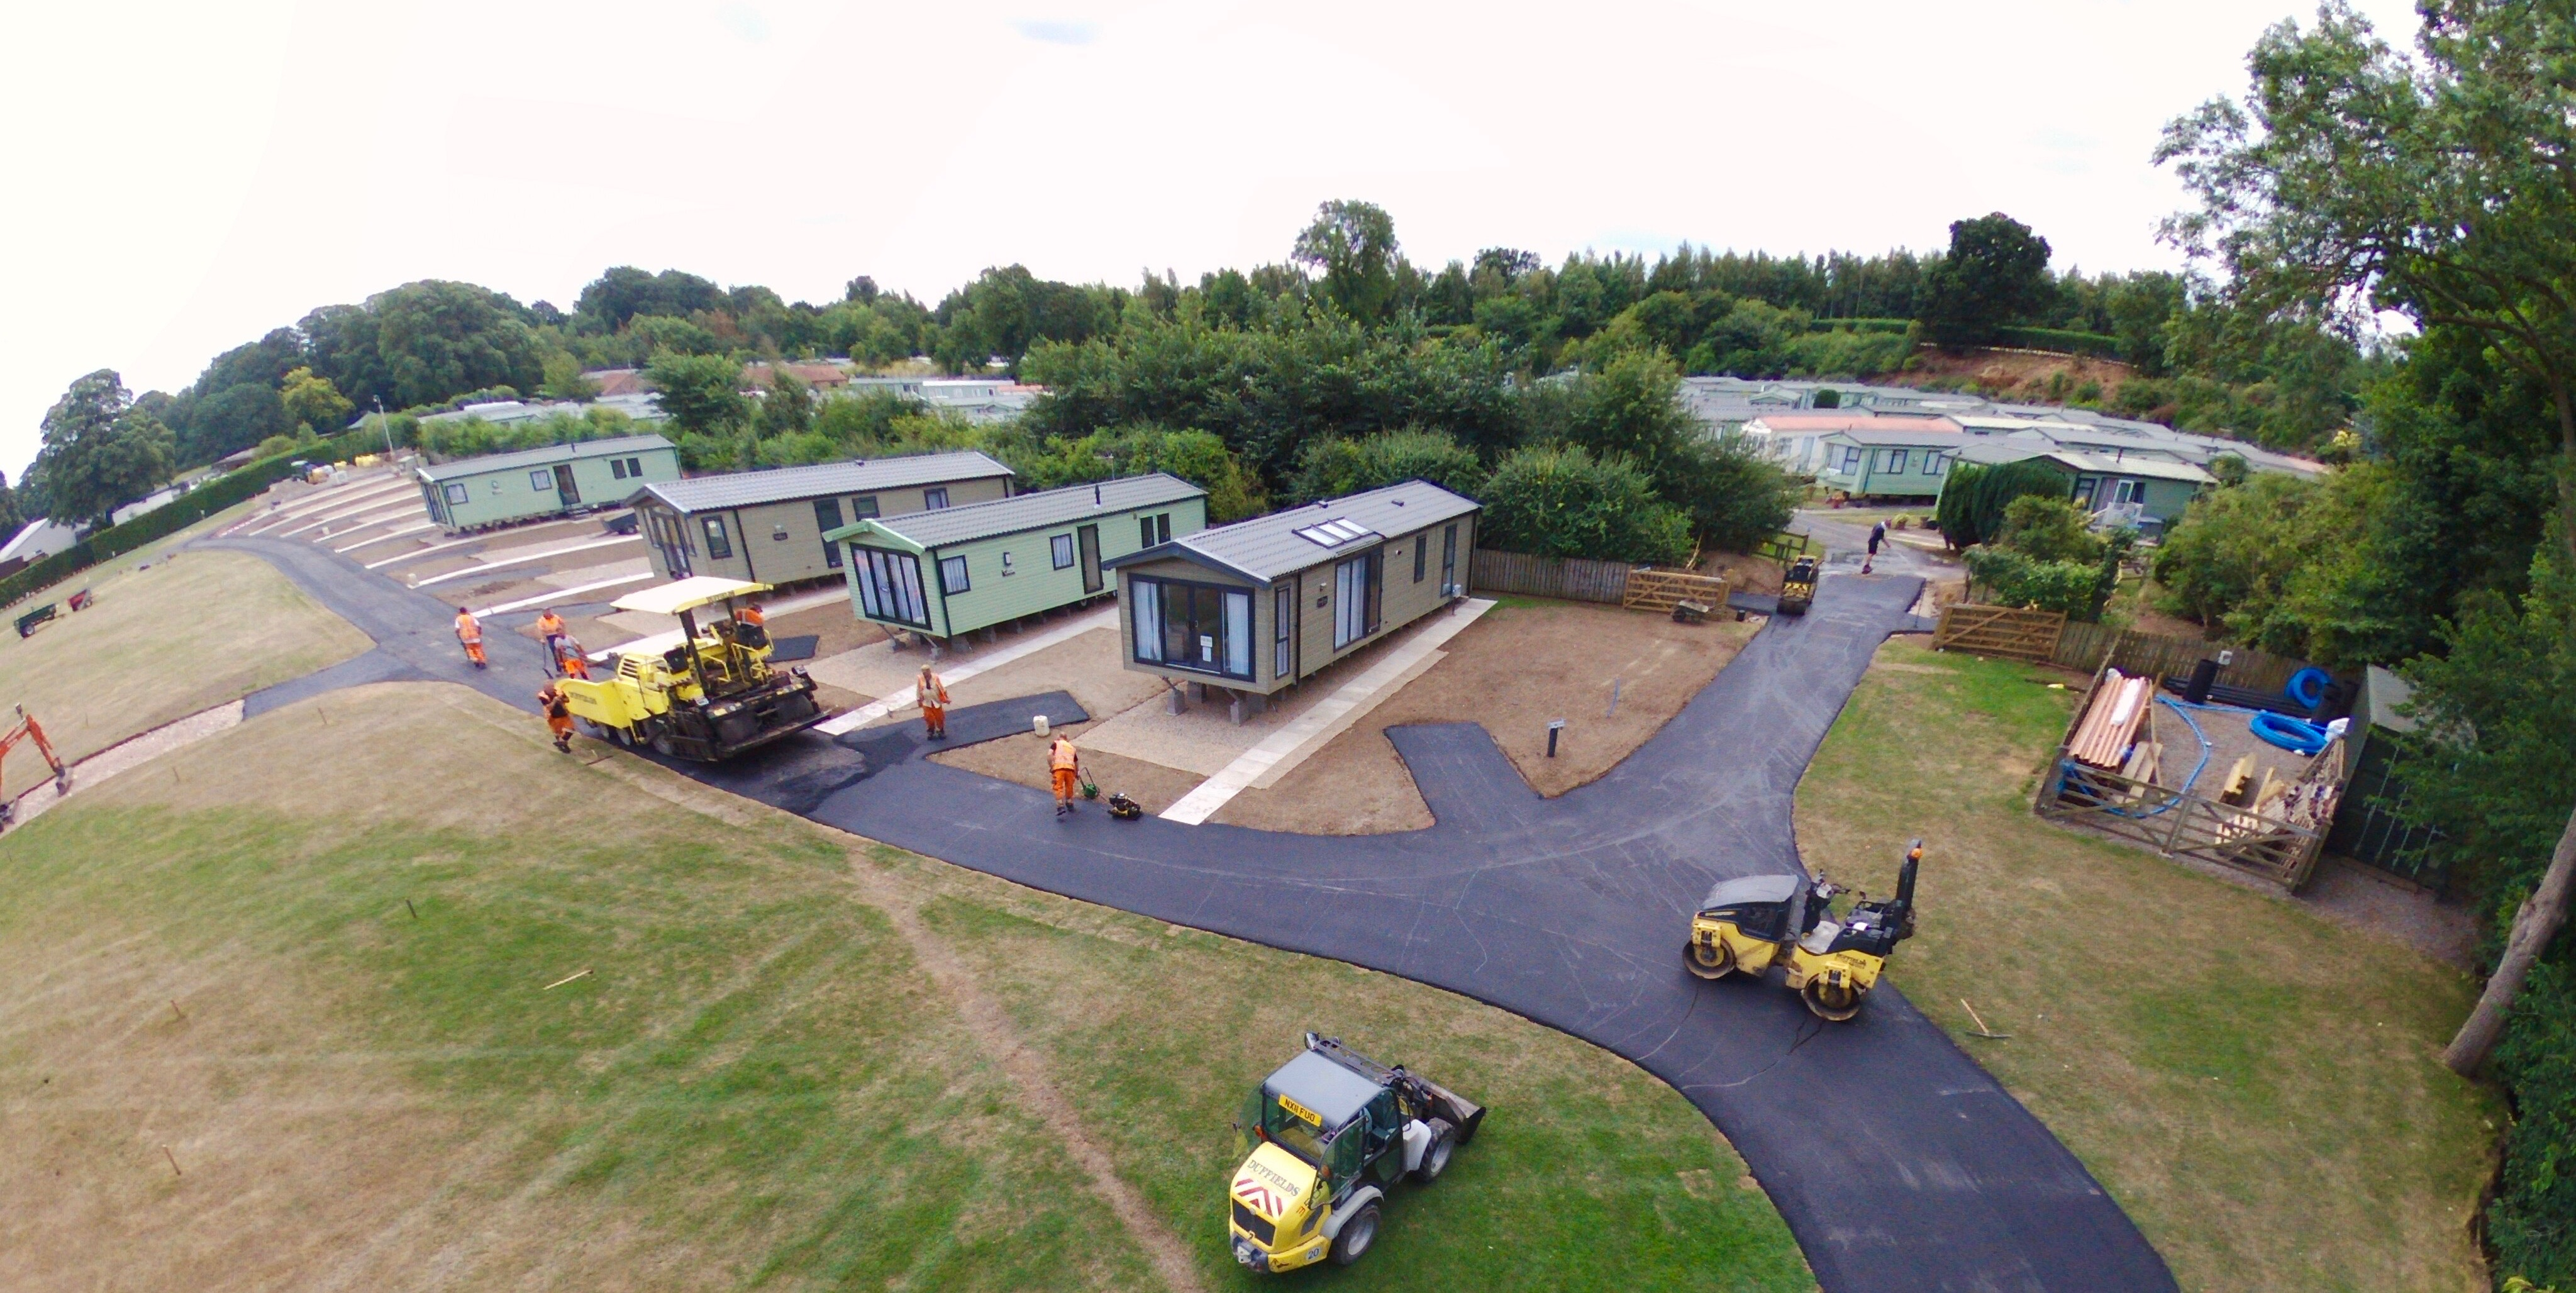 24th July - Tarmac going down!